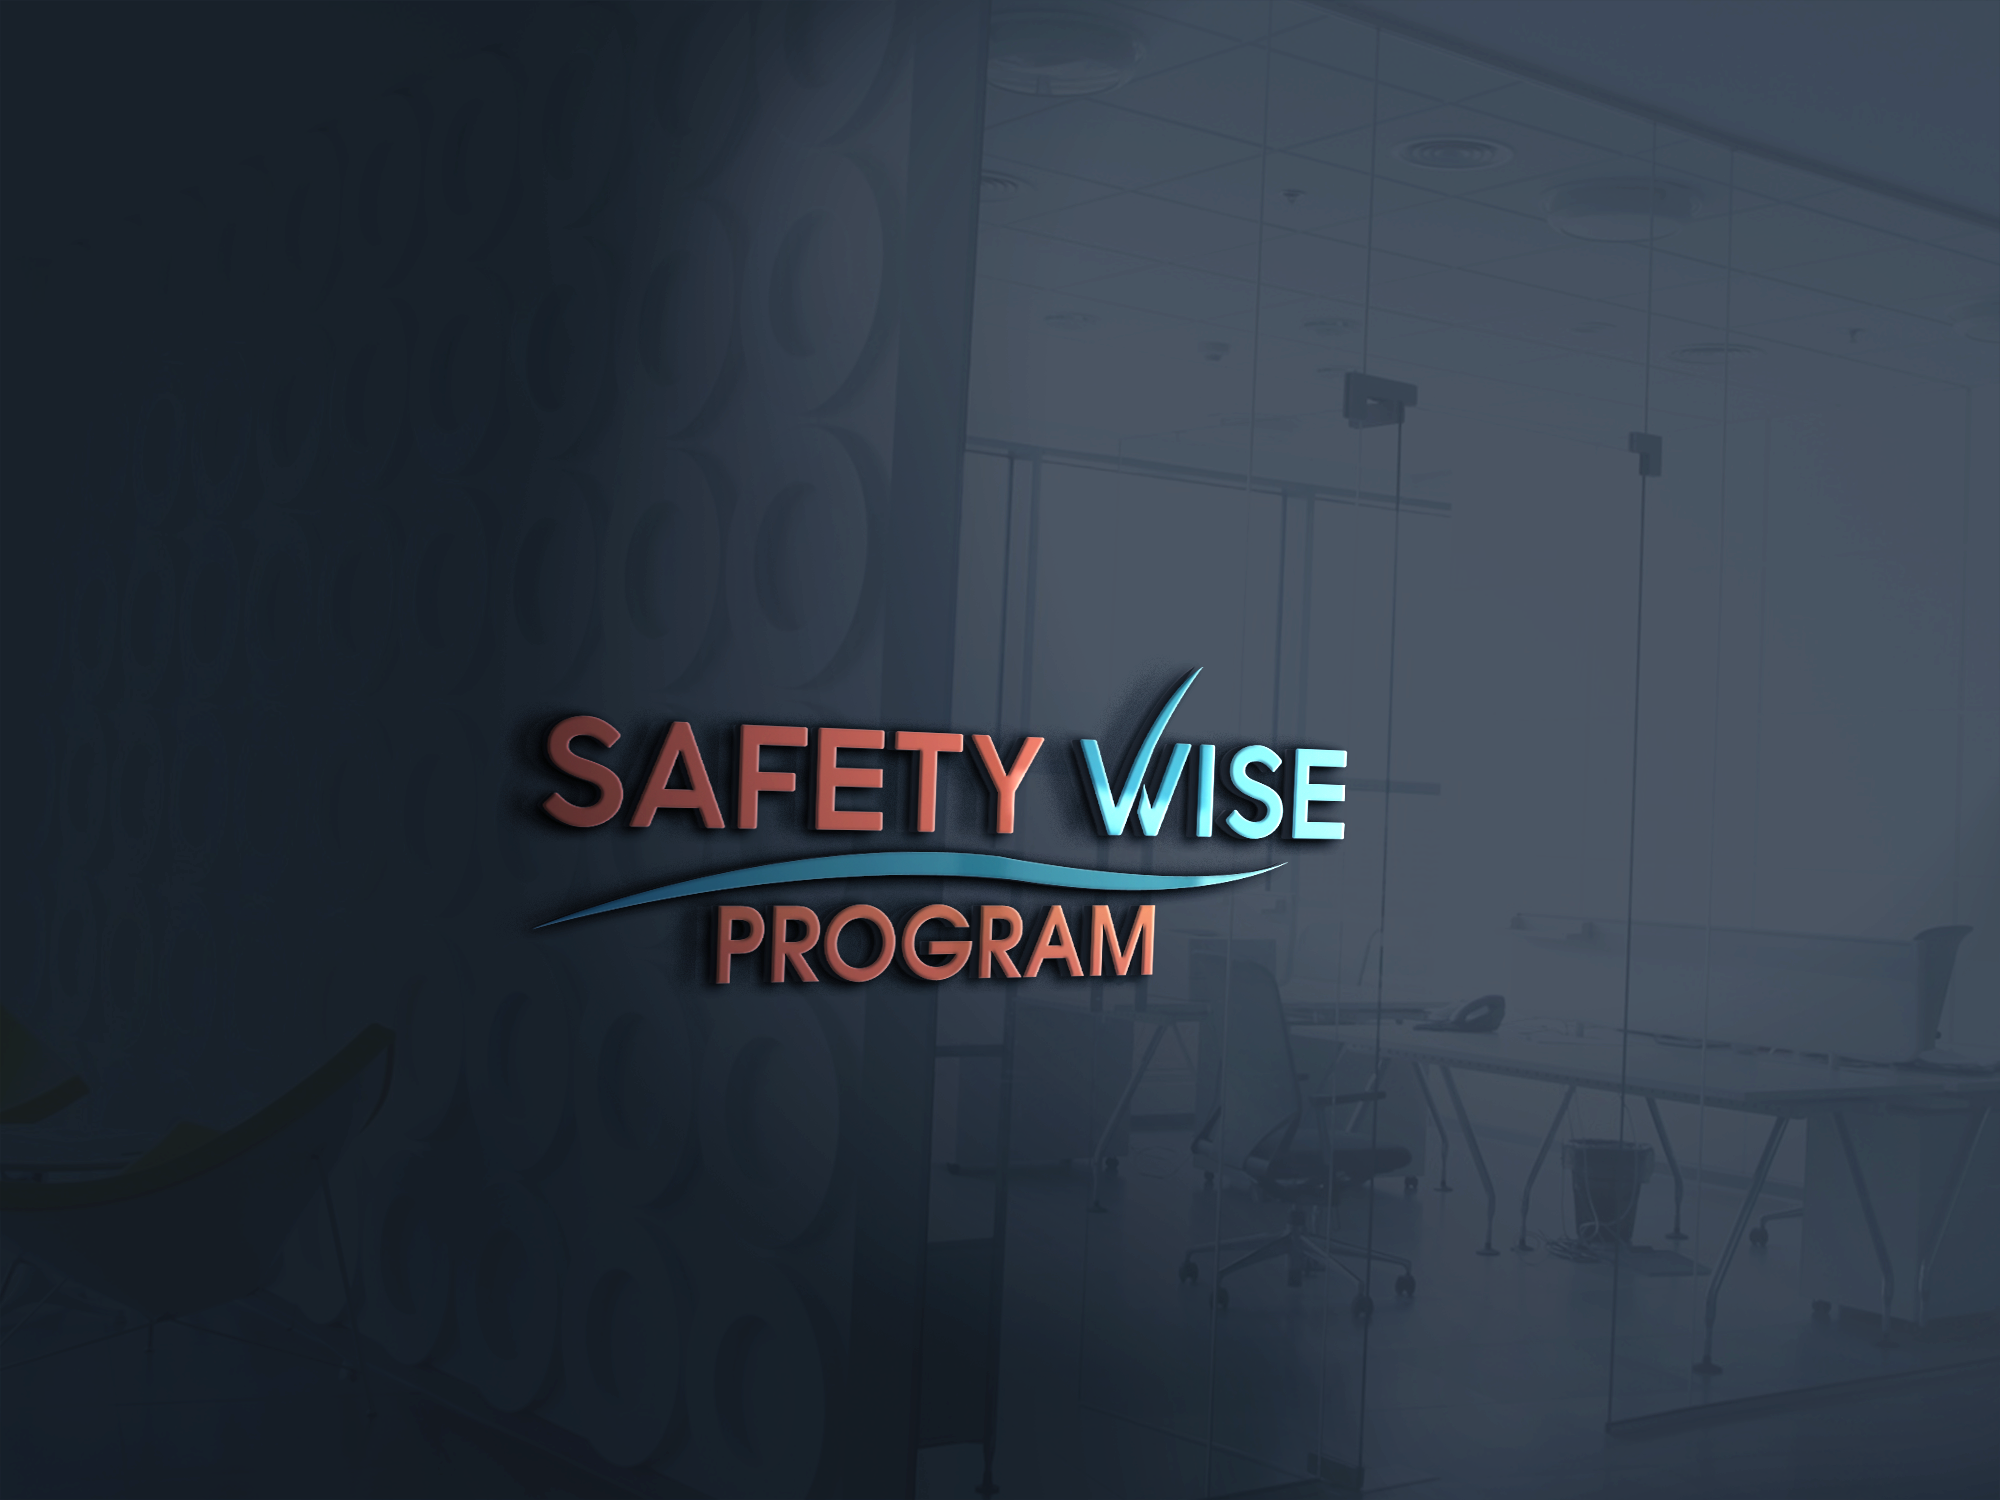 Logo Design by Prohor Ghagra - Entry No. 214 in the Logo Design Contest New Logo Design for Safety Wise Program.